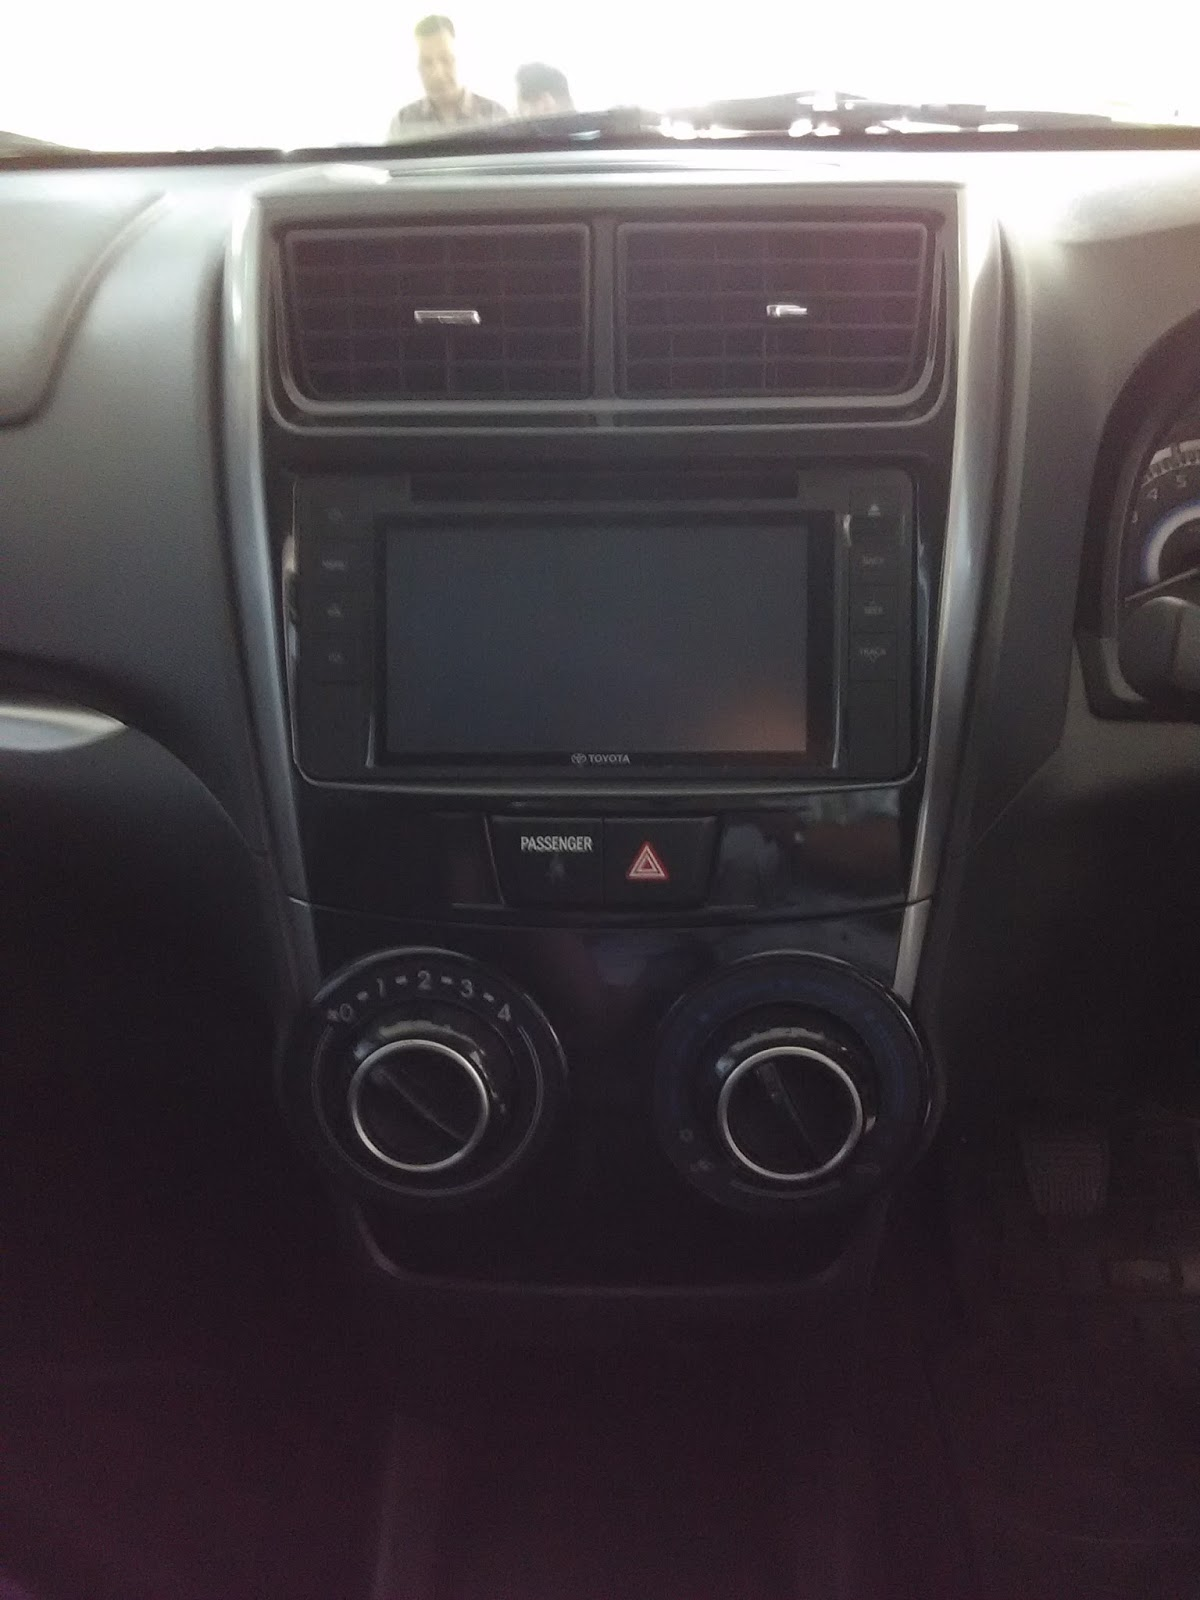 head unit oem grand new veloz avanza 2019 perbedaan 1 5 dan 3 dikta